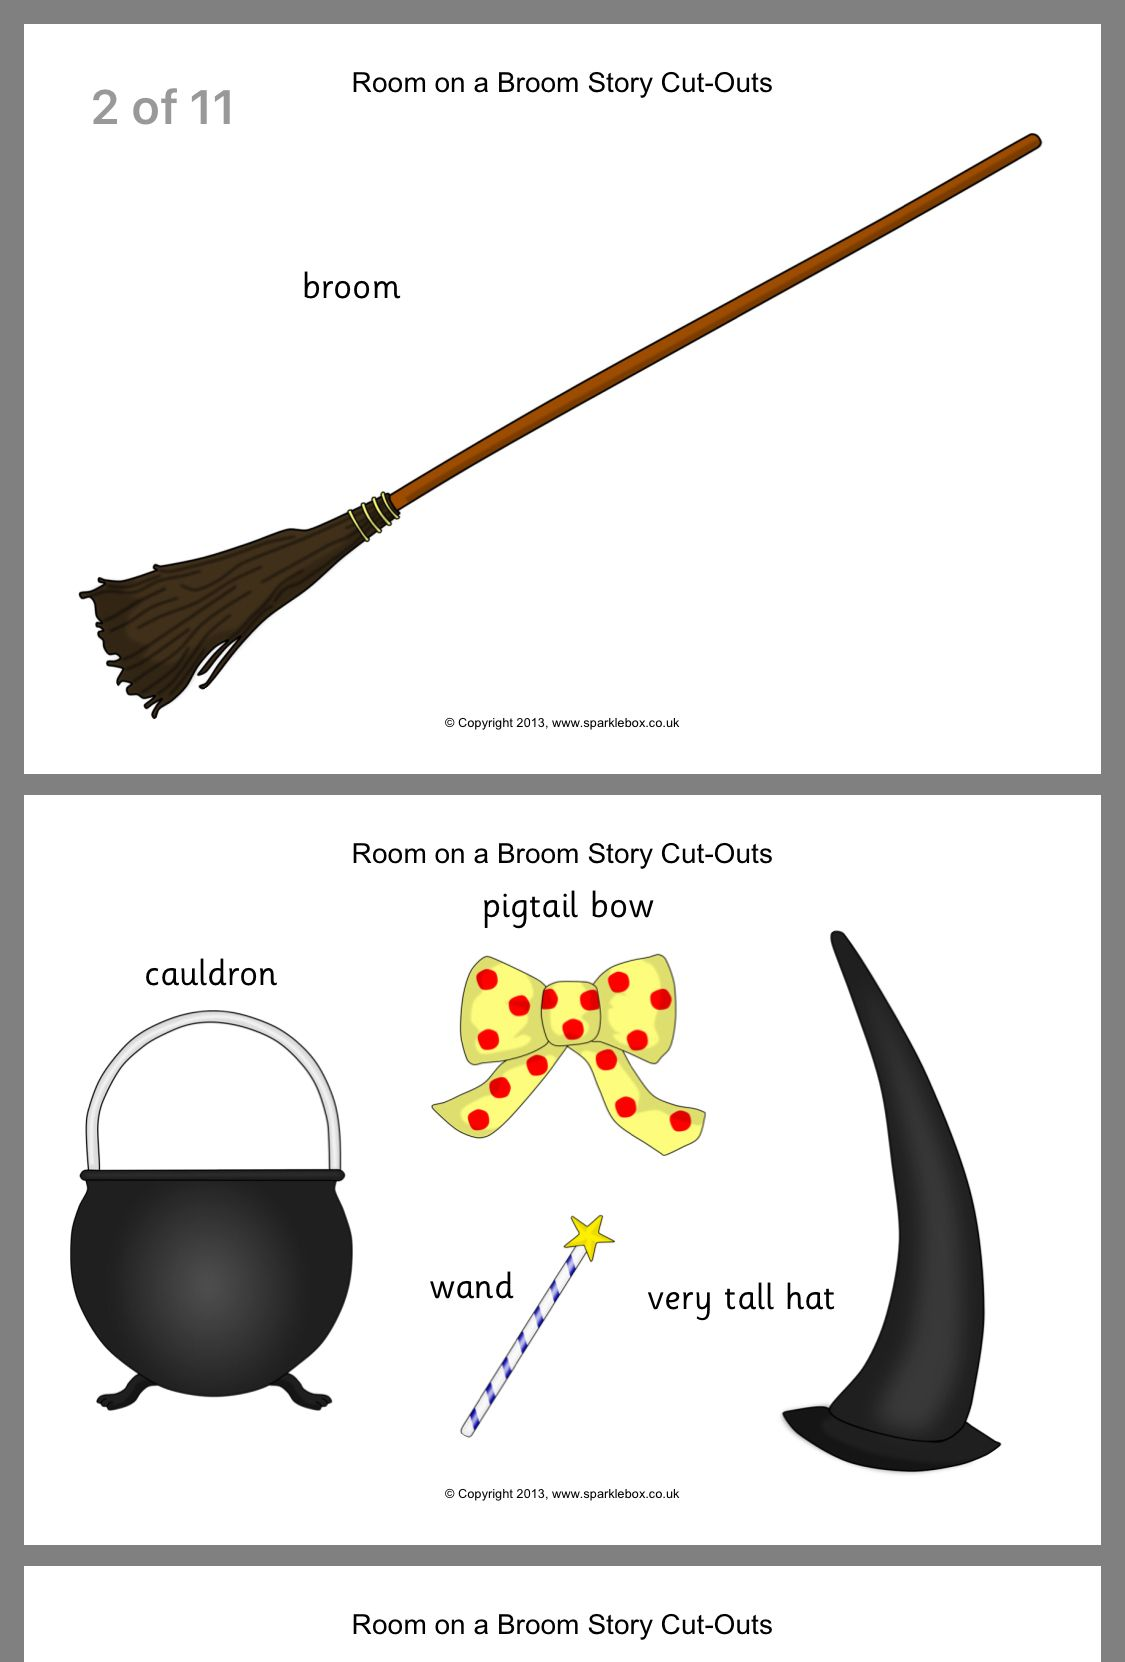 Pin By Claudia Conine Rios On Halloween Room On The Broom Kids Literacy Homeschool Crafts [ 1662 x 1125 Pixel ]